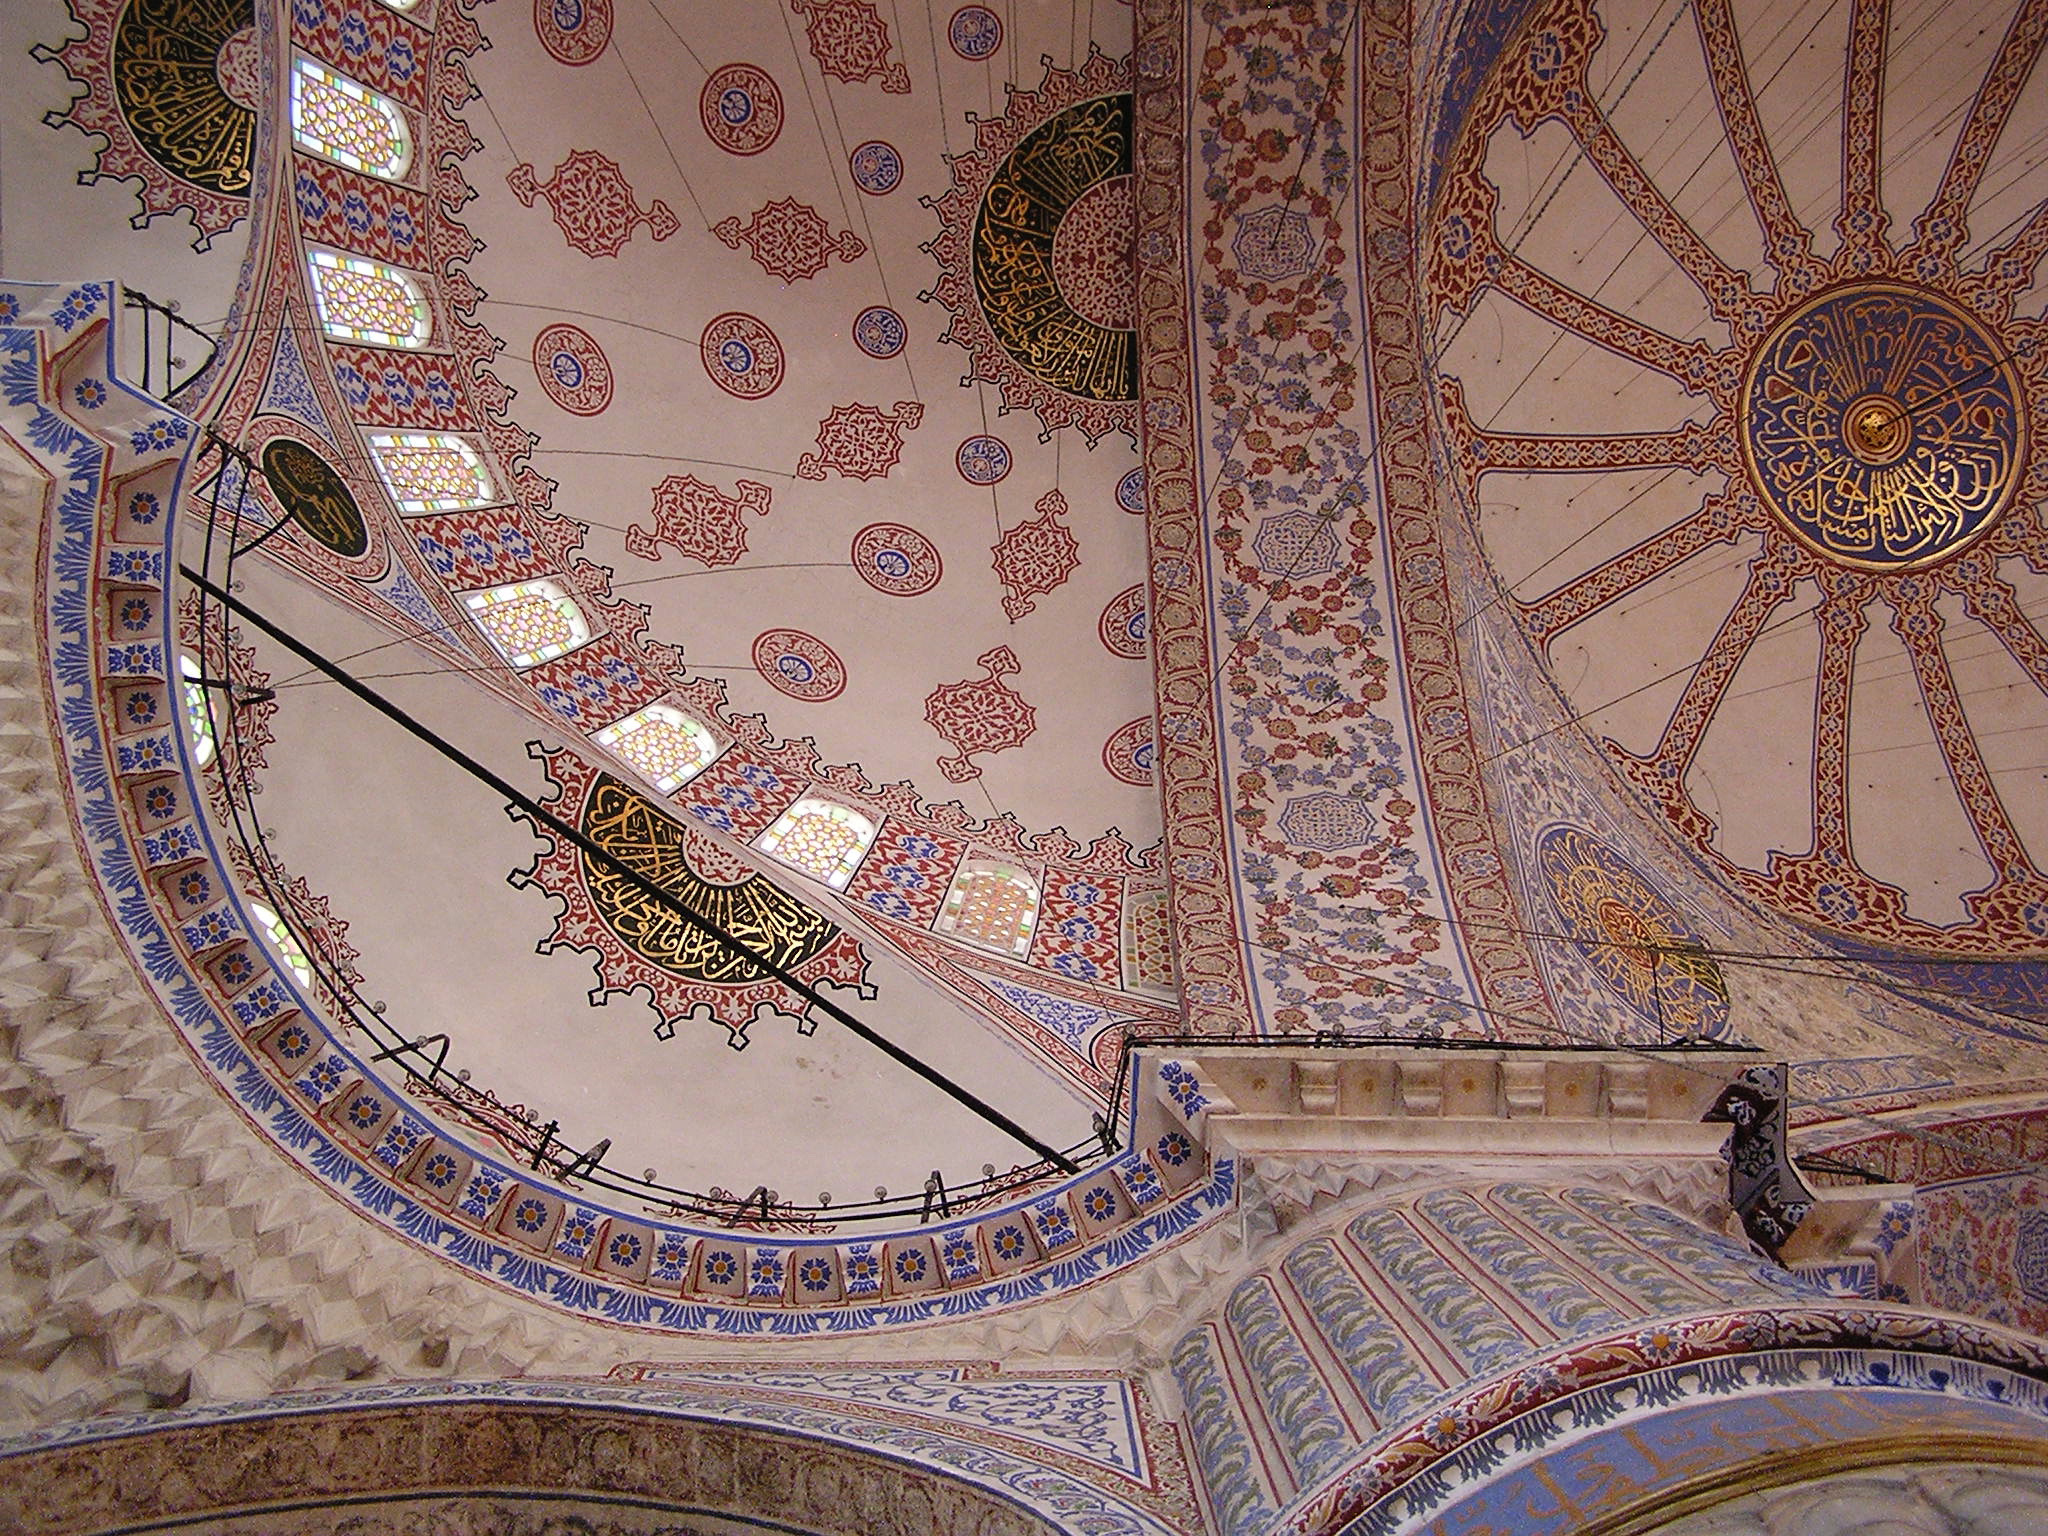 3i Blue Mosque ceiling.jpg